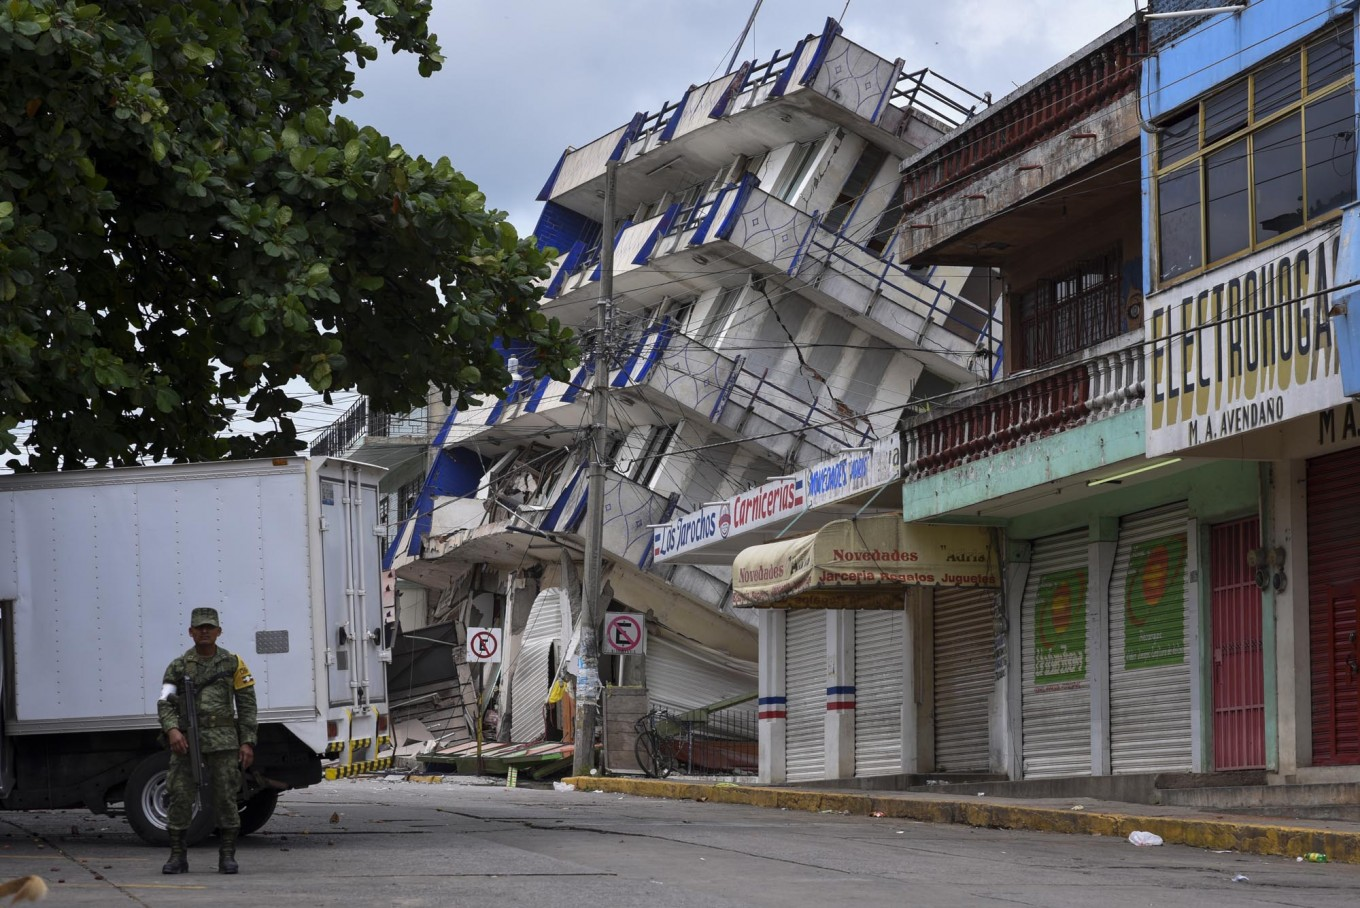 A soldier stands guard a few metres away from the Sensacion hotel which collapsed with the powerful earthquake that struck Mexico overnight, in Matias Romero, Oaxaca State, on September 8, 2017. Mexico's most powerful earthquake in a 